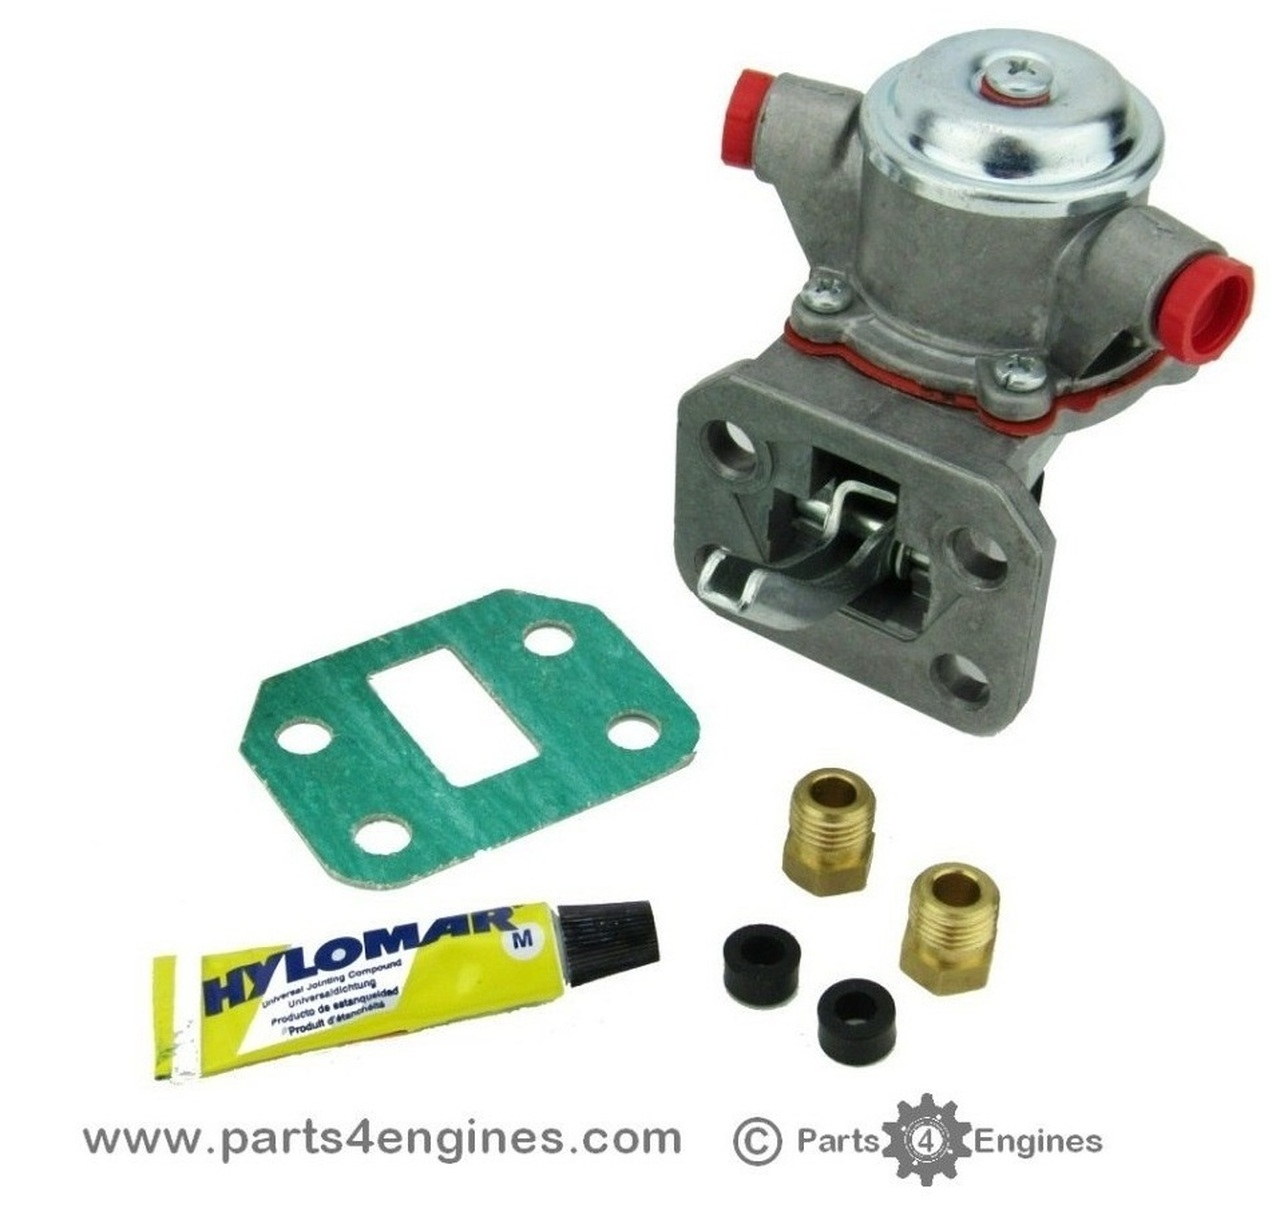 Perkins Phaser 1004 Fuel Lift Pump for engine codes AA, AB, AG, AH - parts4engines.com